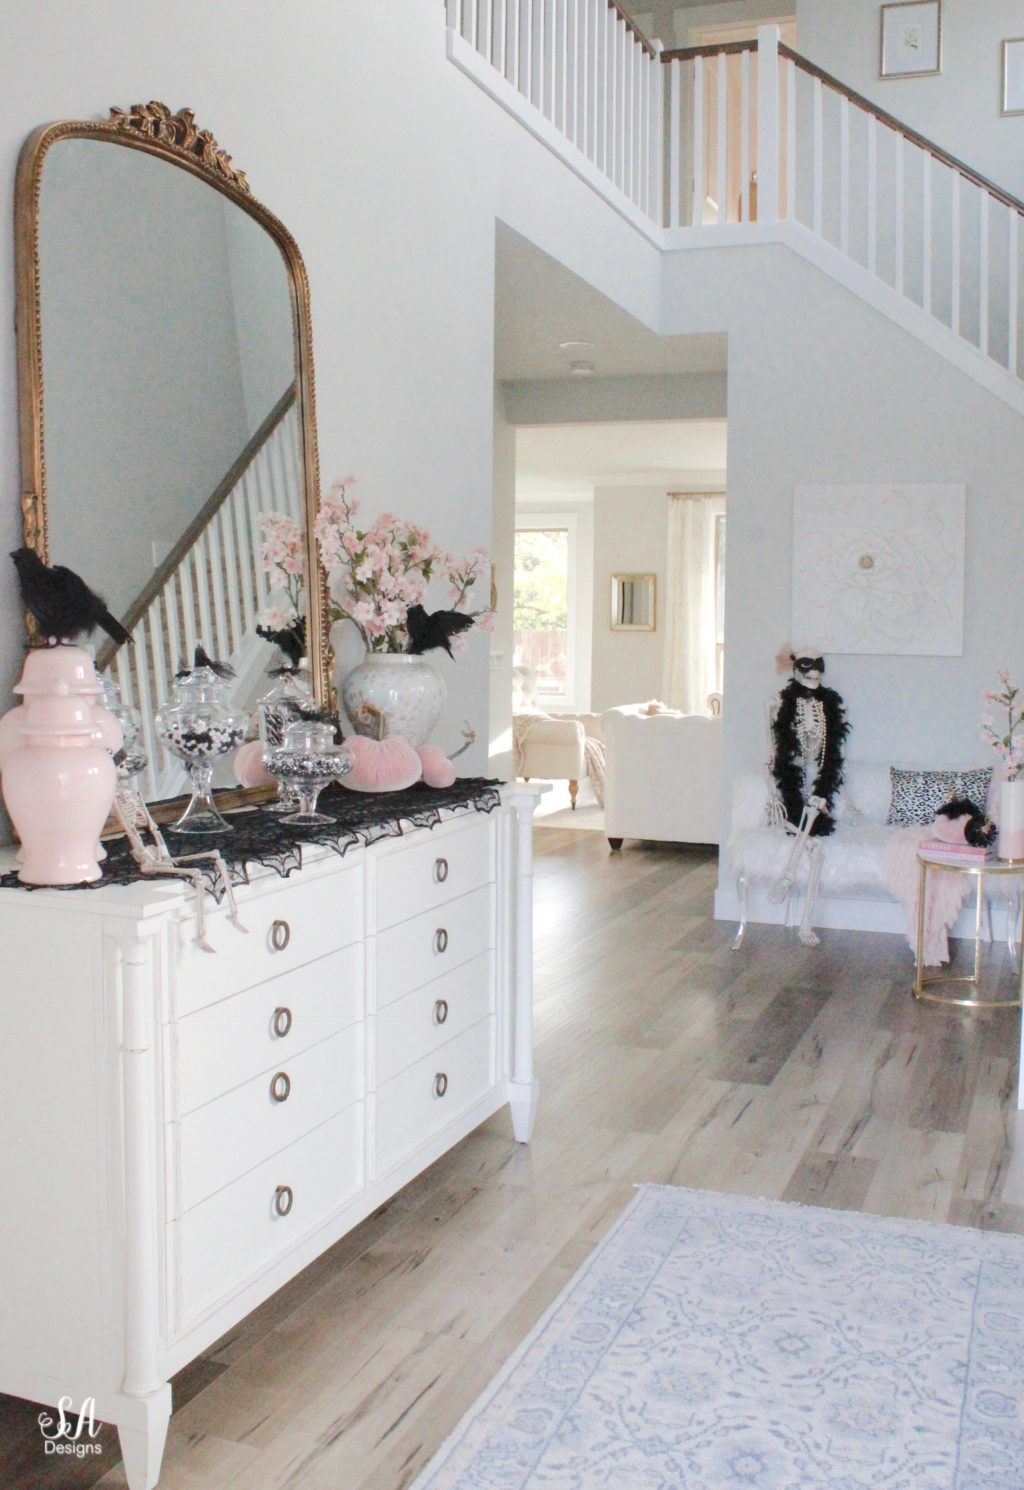 Glam Halloween Entry With Pops Of Pink - Summer Adams on christmas home designs, thanksgiving home designs, theater designs, modern family home designs, house home designs, star wars home designs,